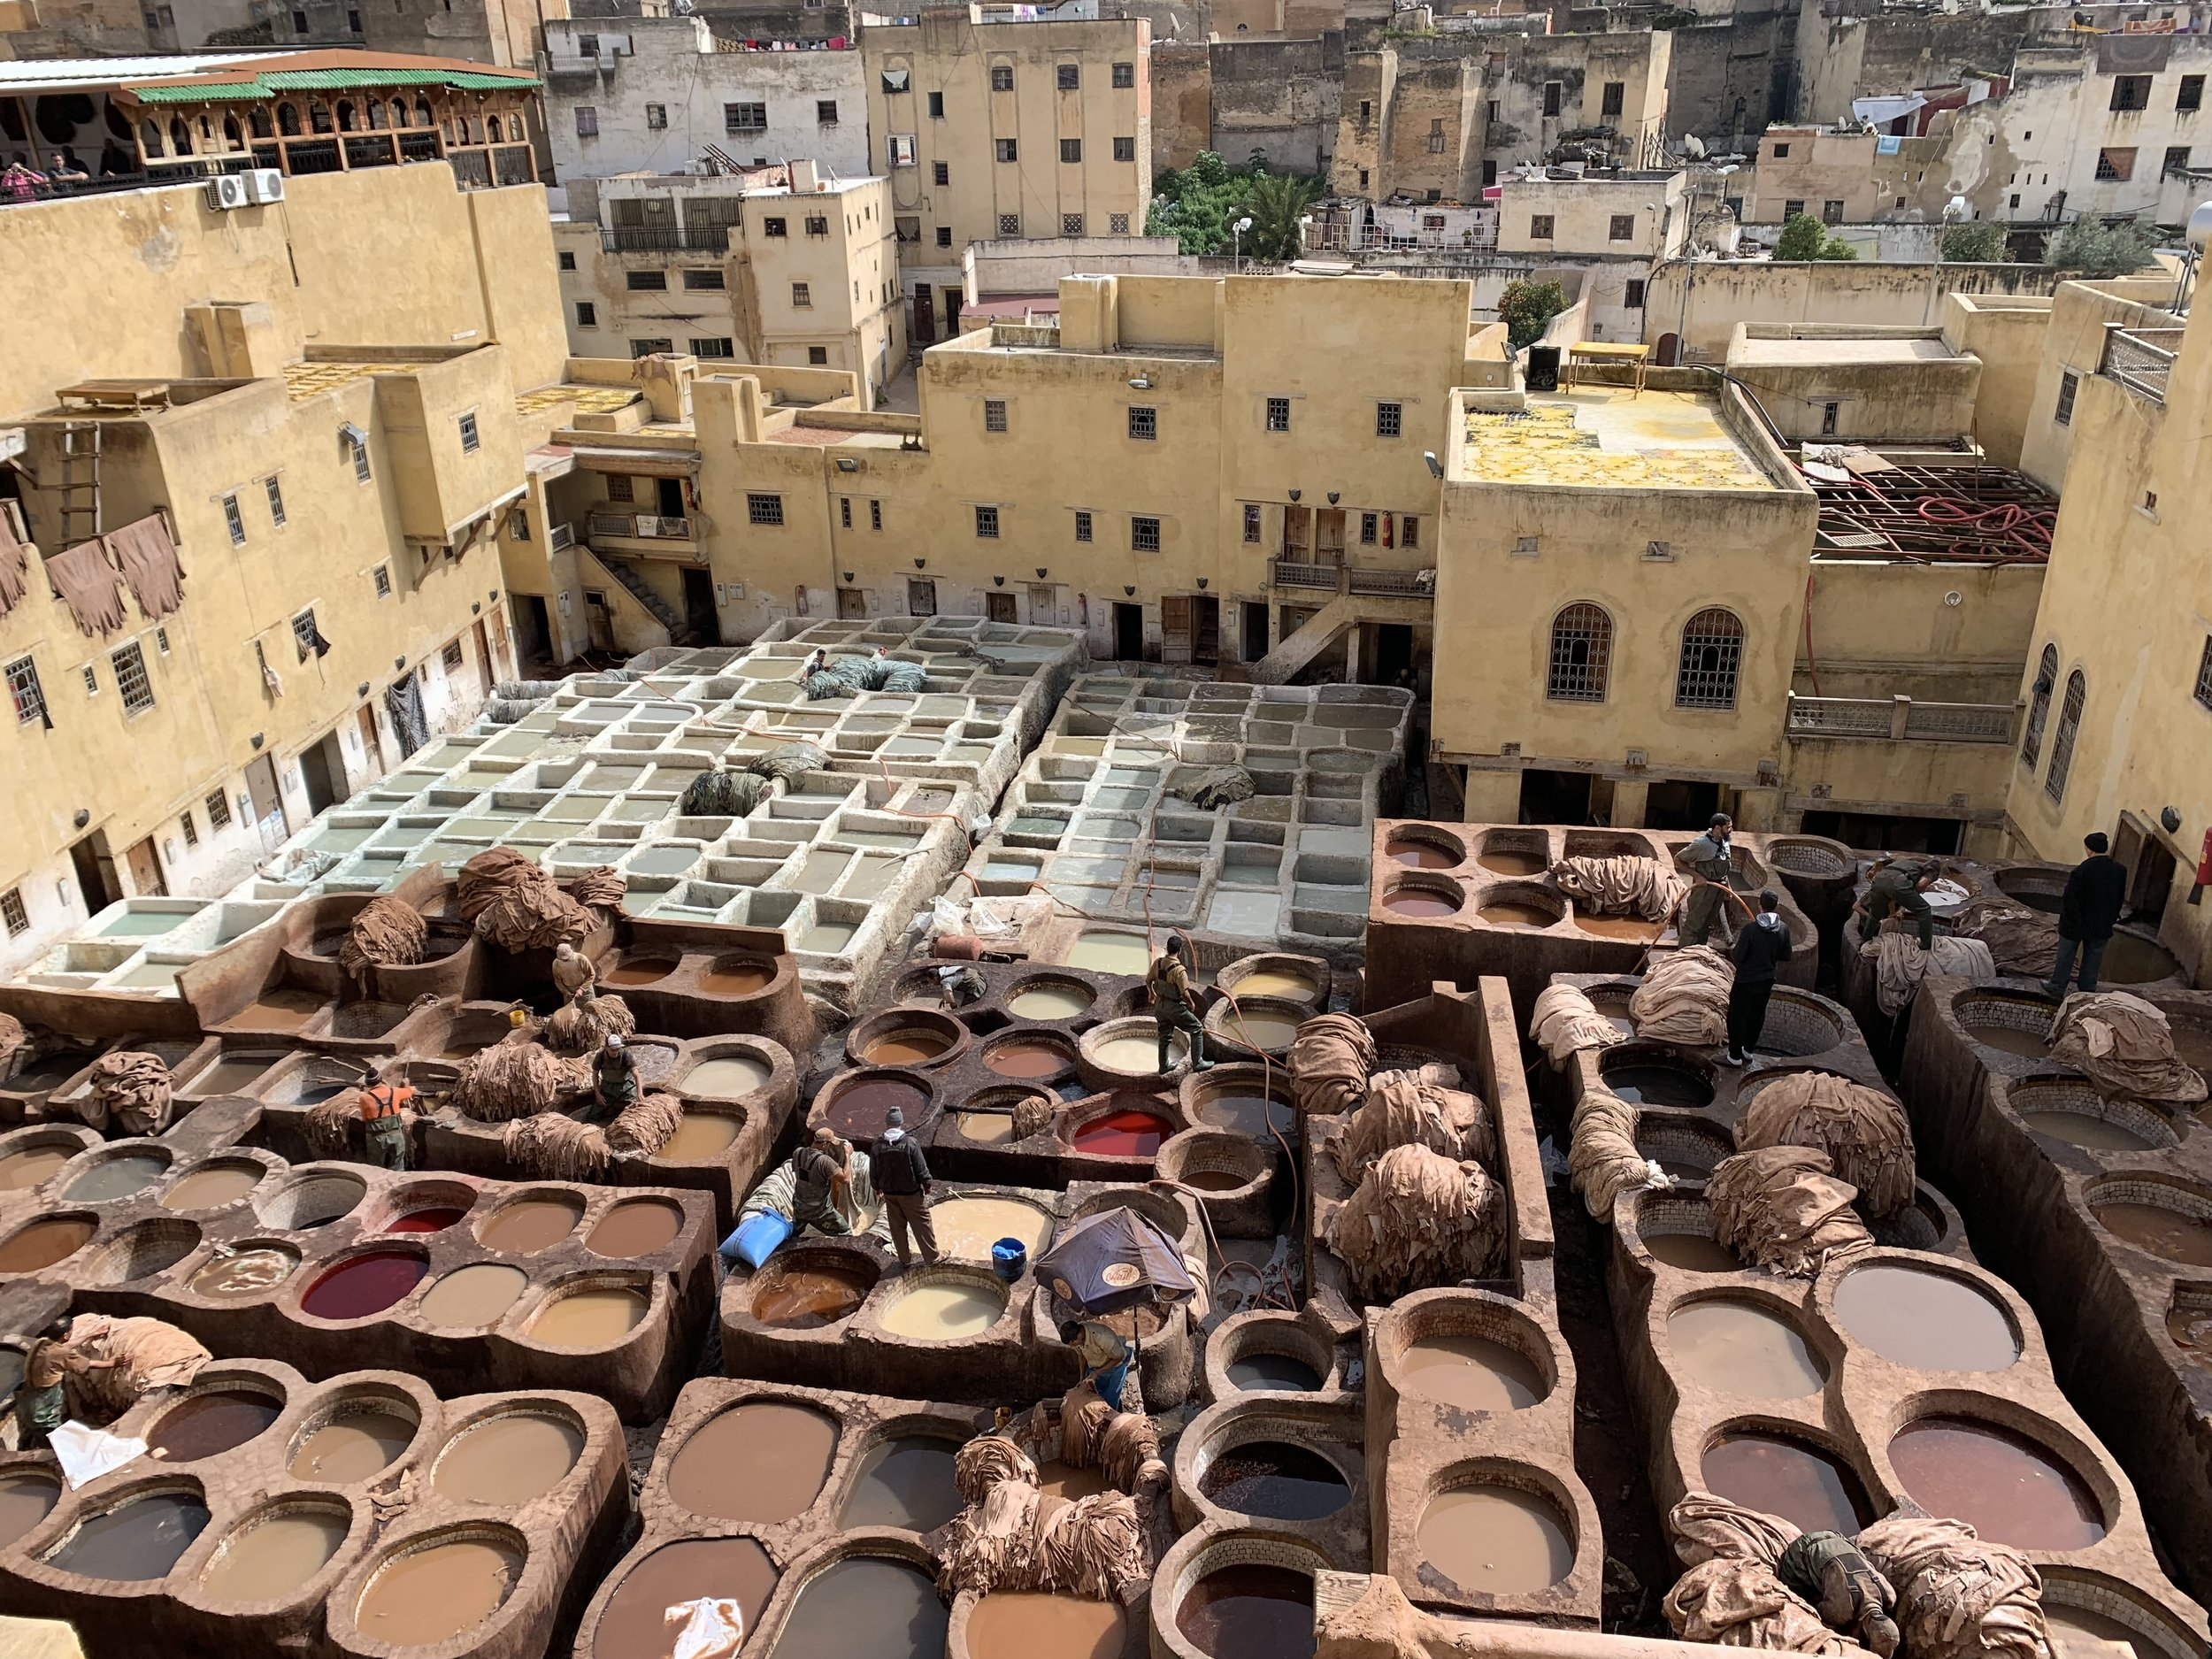 Our program took us on a two- day trip to Fez! We experienced this ancient city and its smelly tanneries; we had to use mint leaves to somewhat diffuse the stench. Photo credit: Lee, 2019